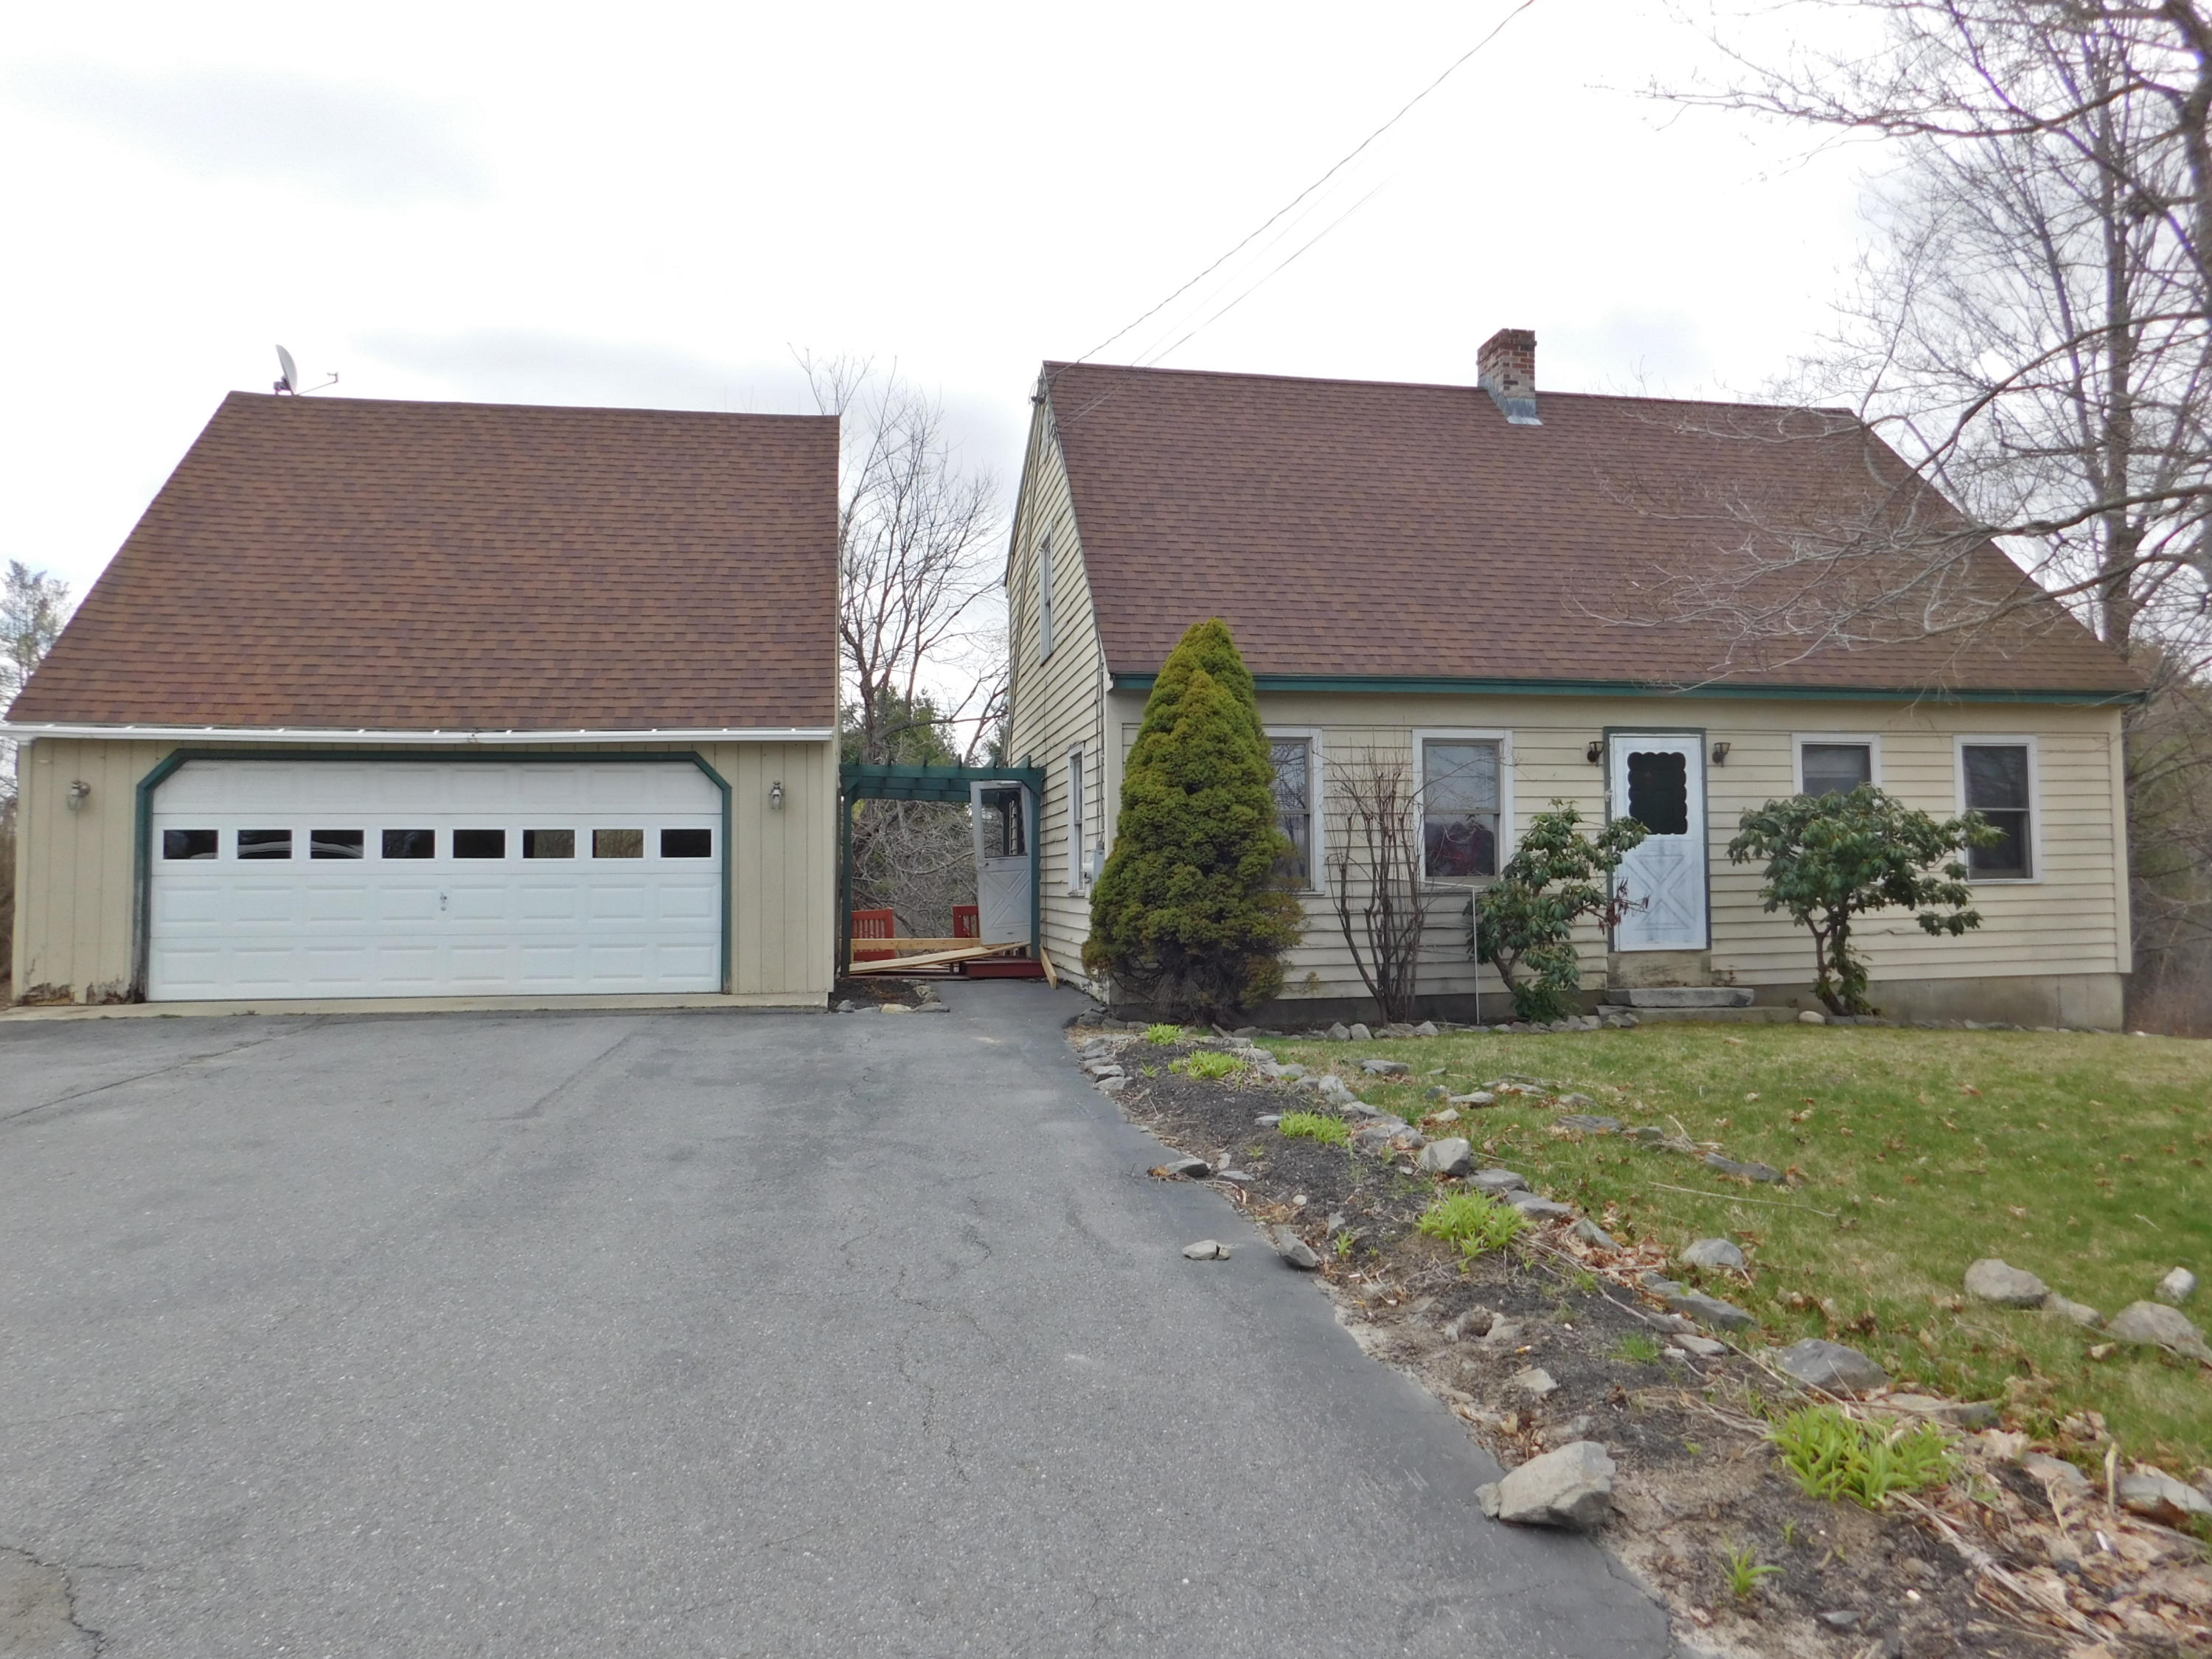 Main image for MLS listing 1487794